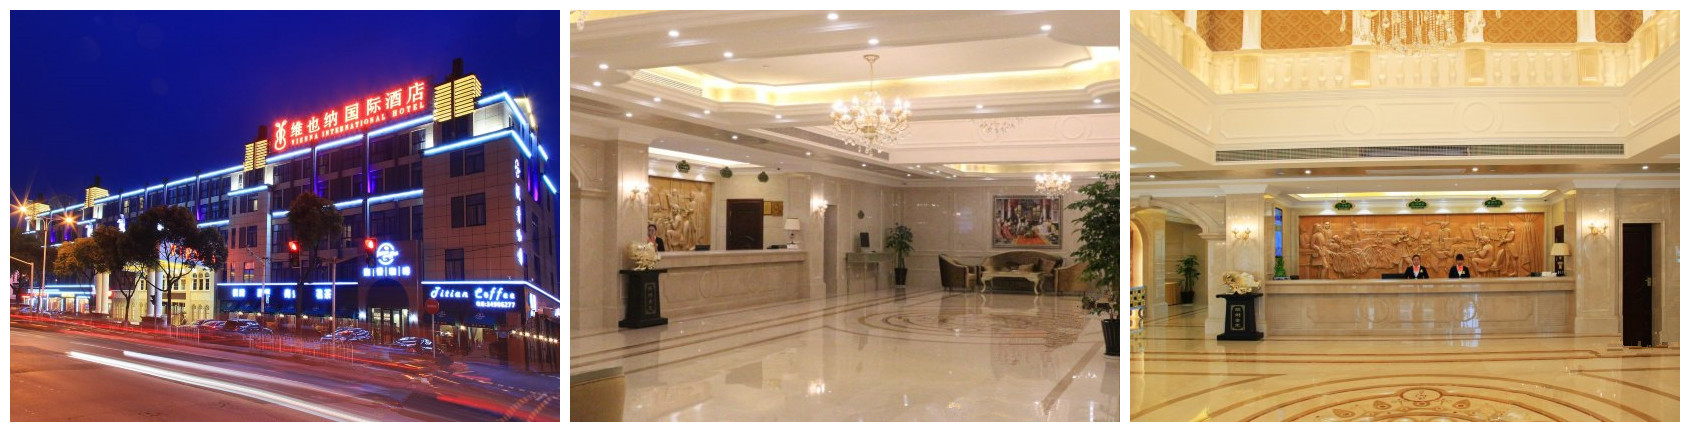 Vienna international hotel Shanghai hongqiao